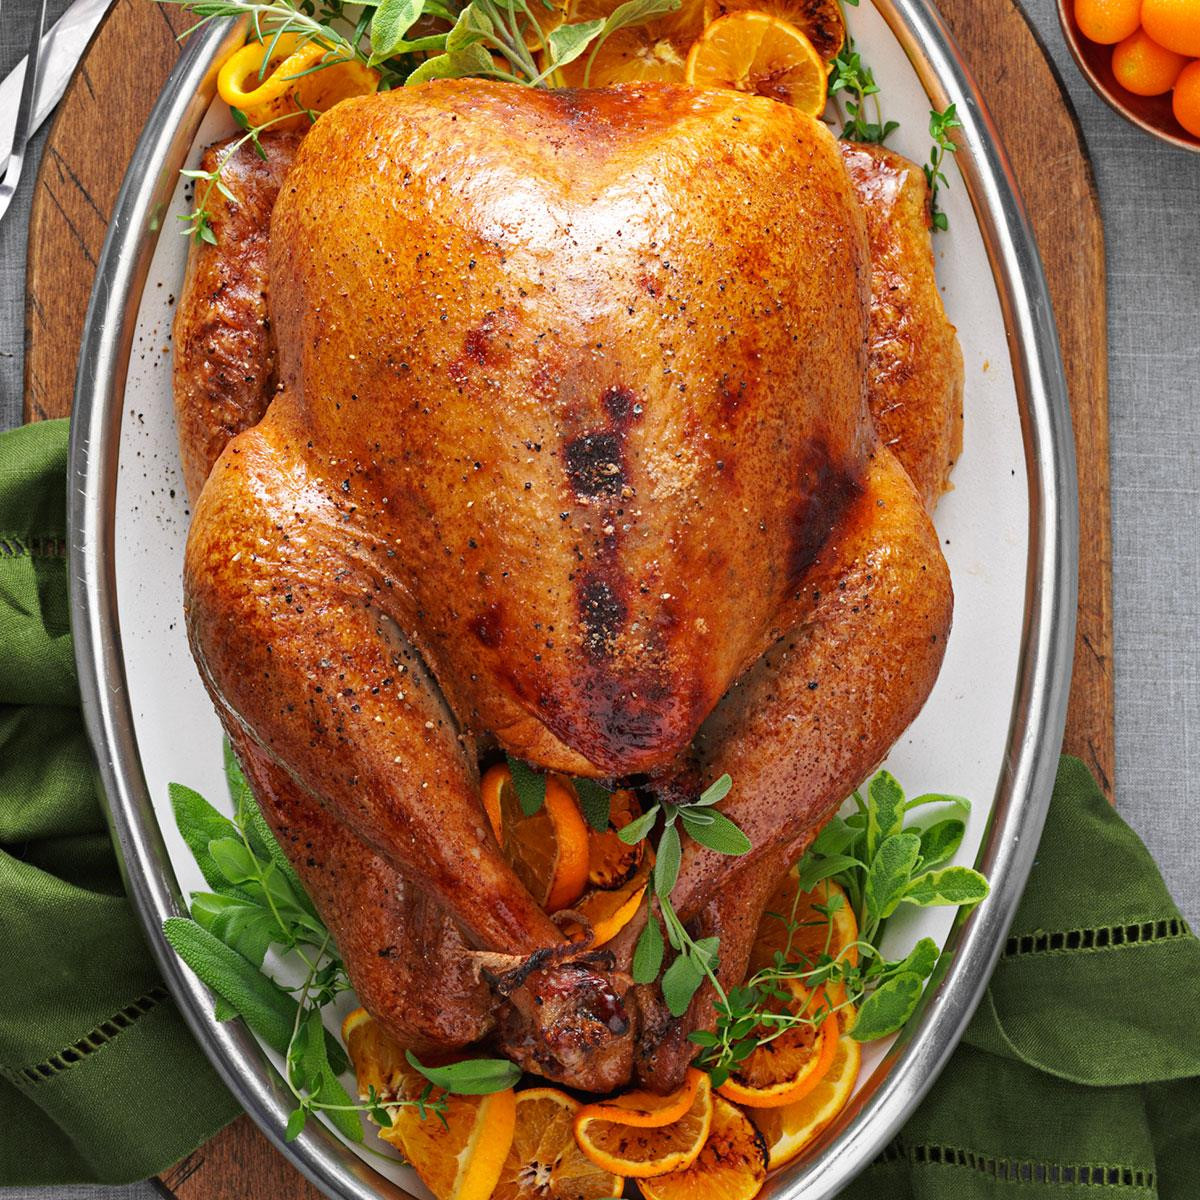 Turkey Recipes For Thanksgiving Dinner  Find Recipes Appetizers Desserts Holiday Recipes